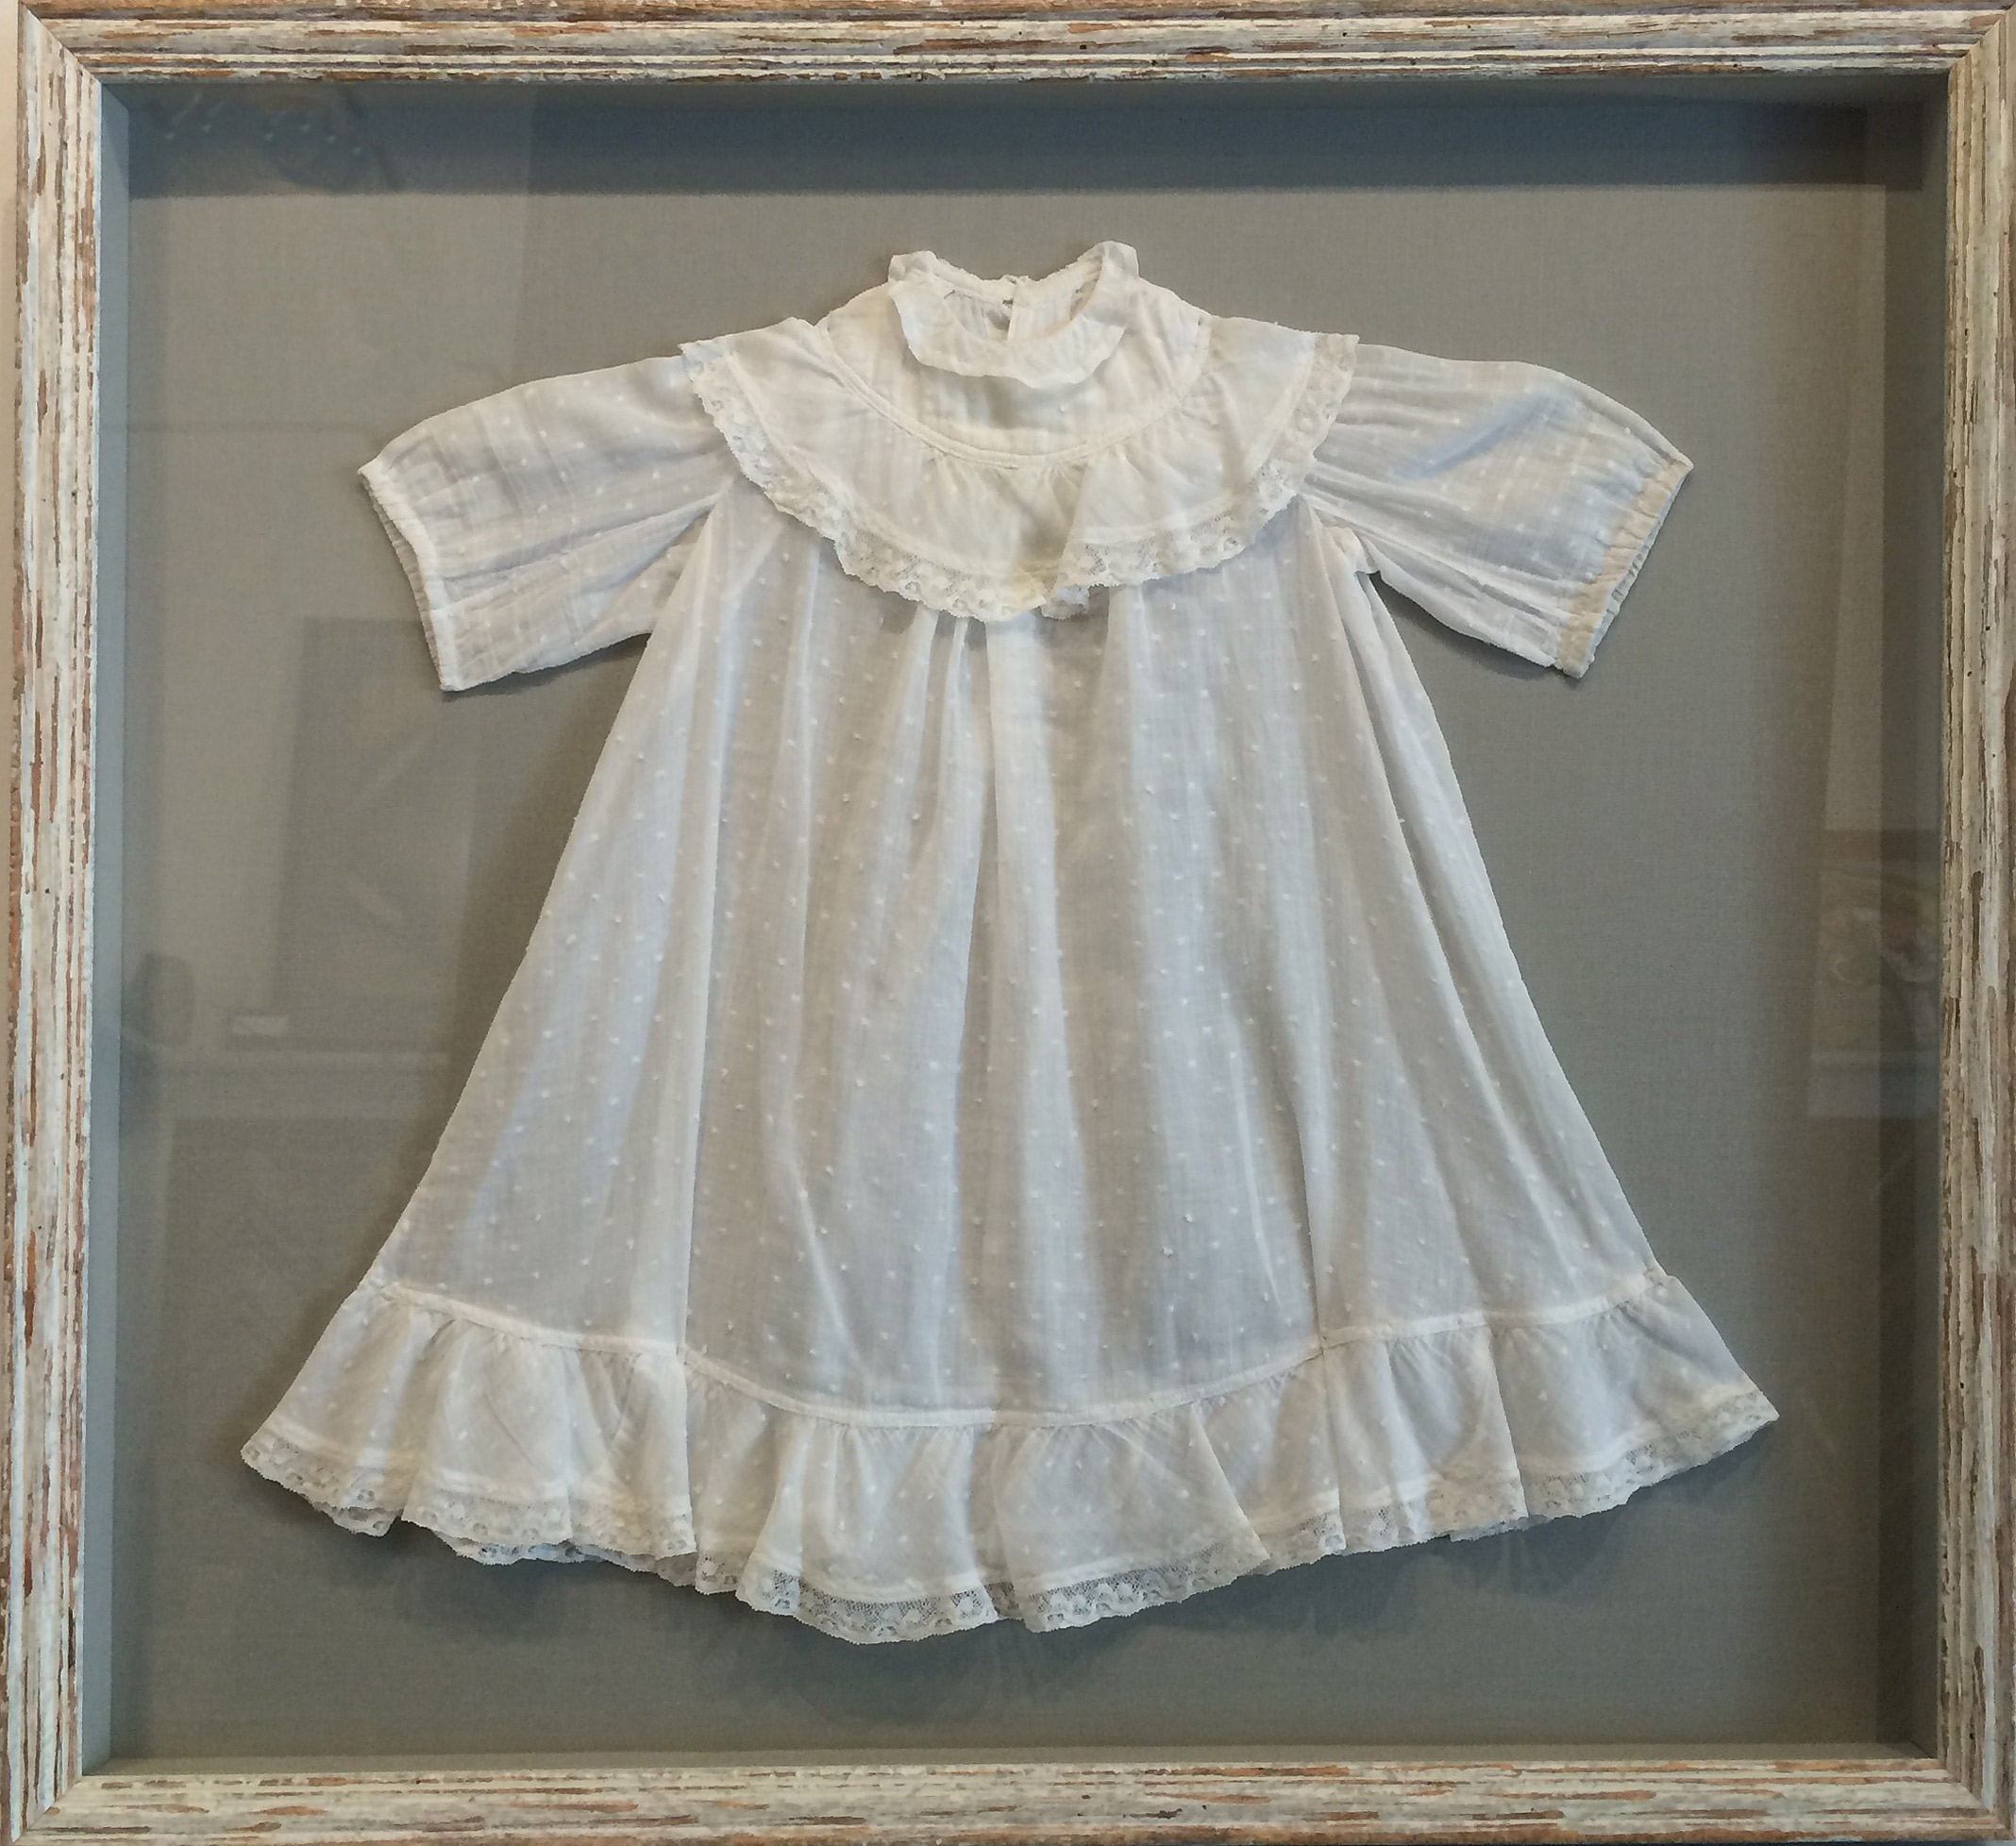 This child's Christening gown was floated on a neutral gray mat and placed into a vintage-looking white barnwood frame, .